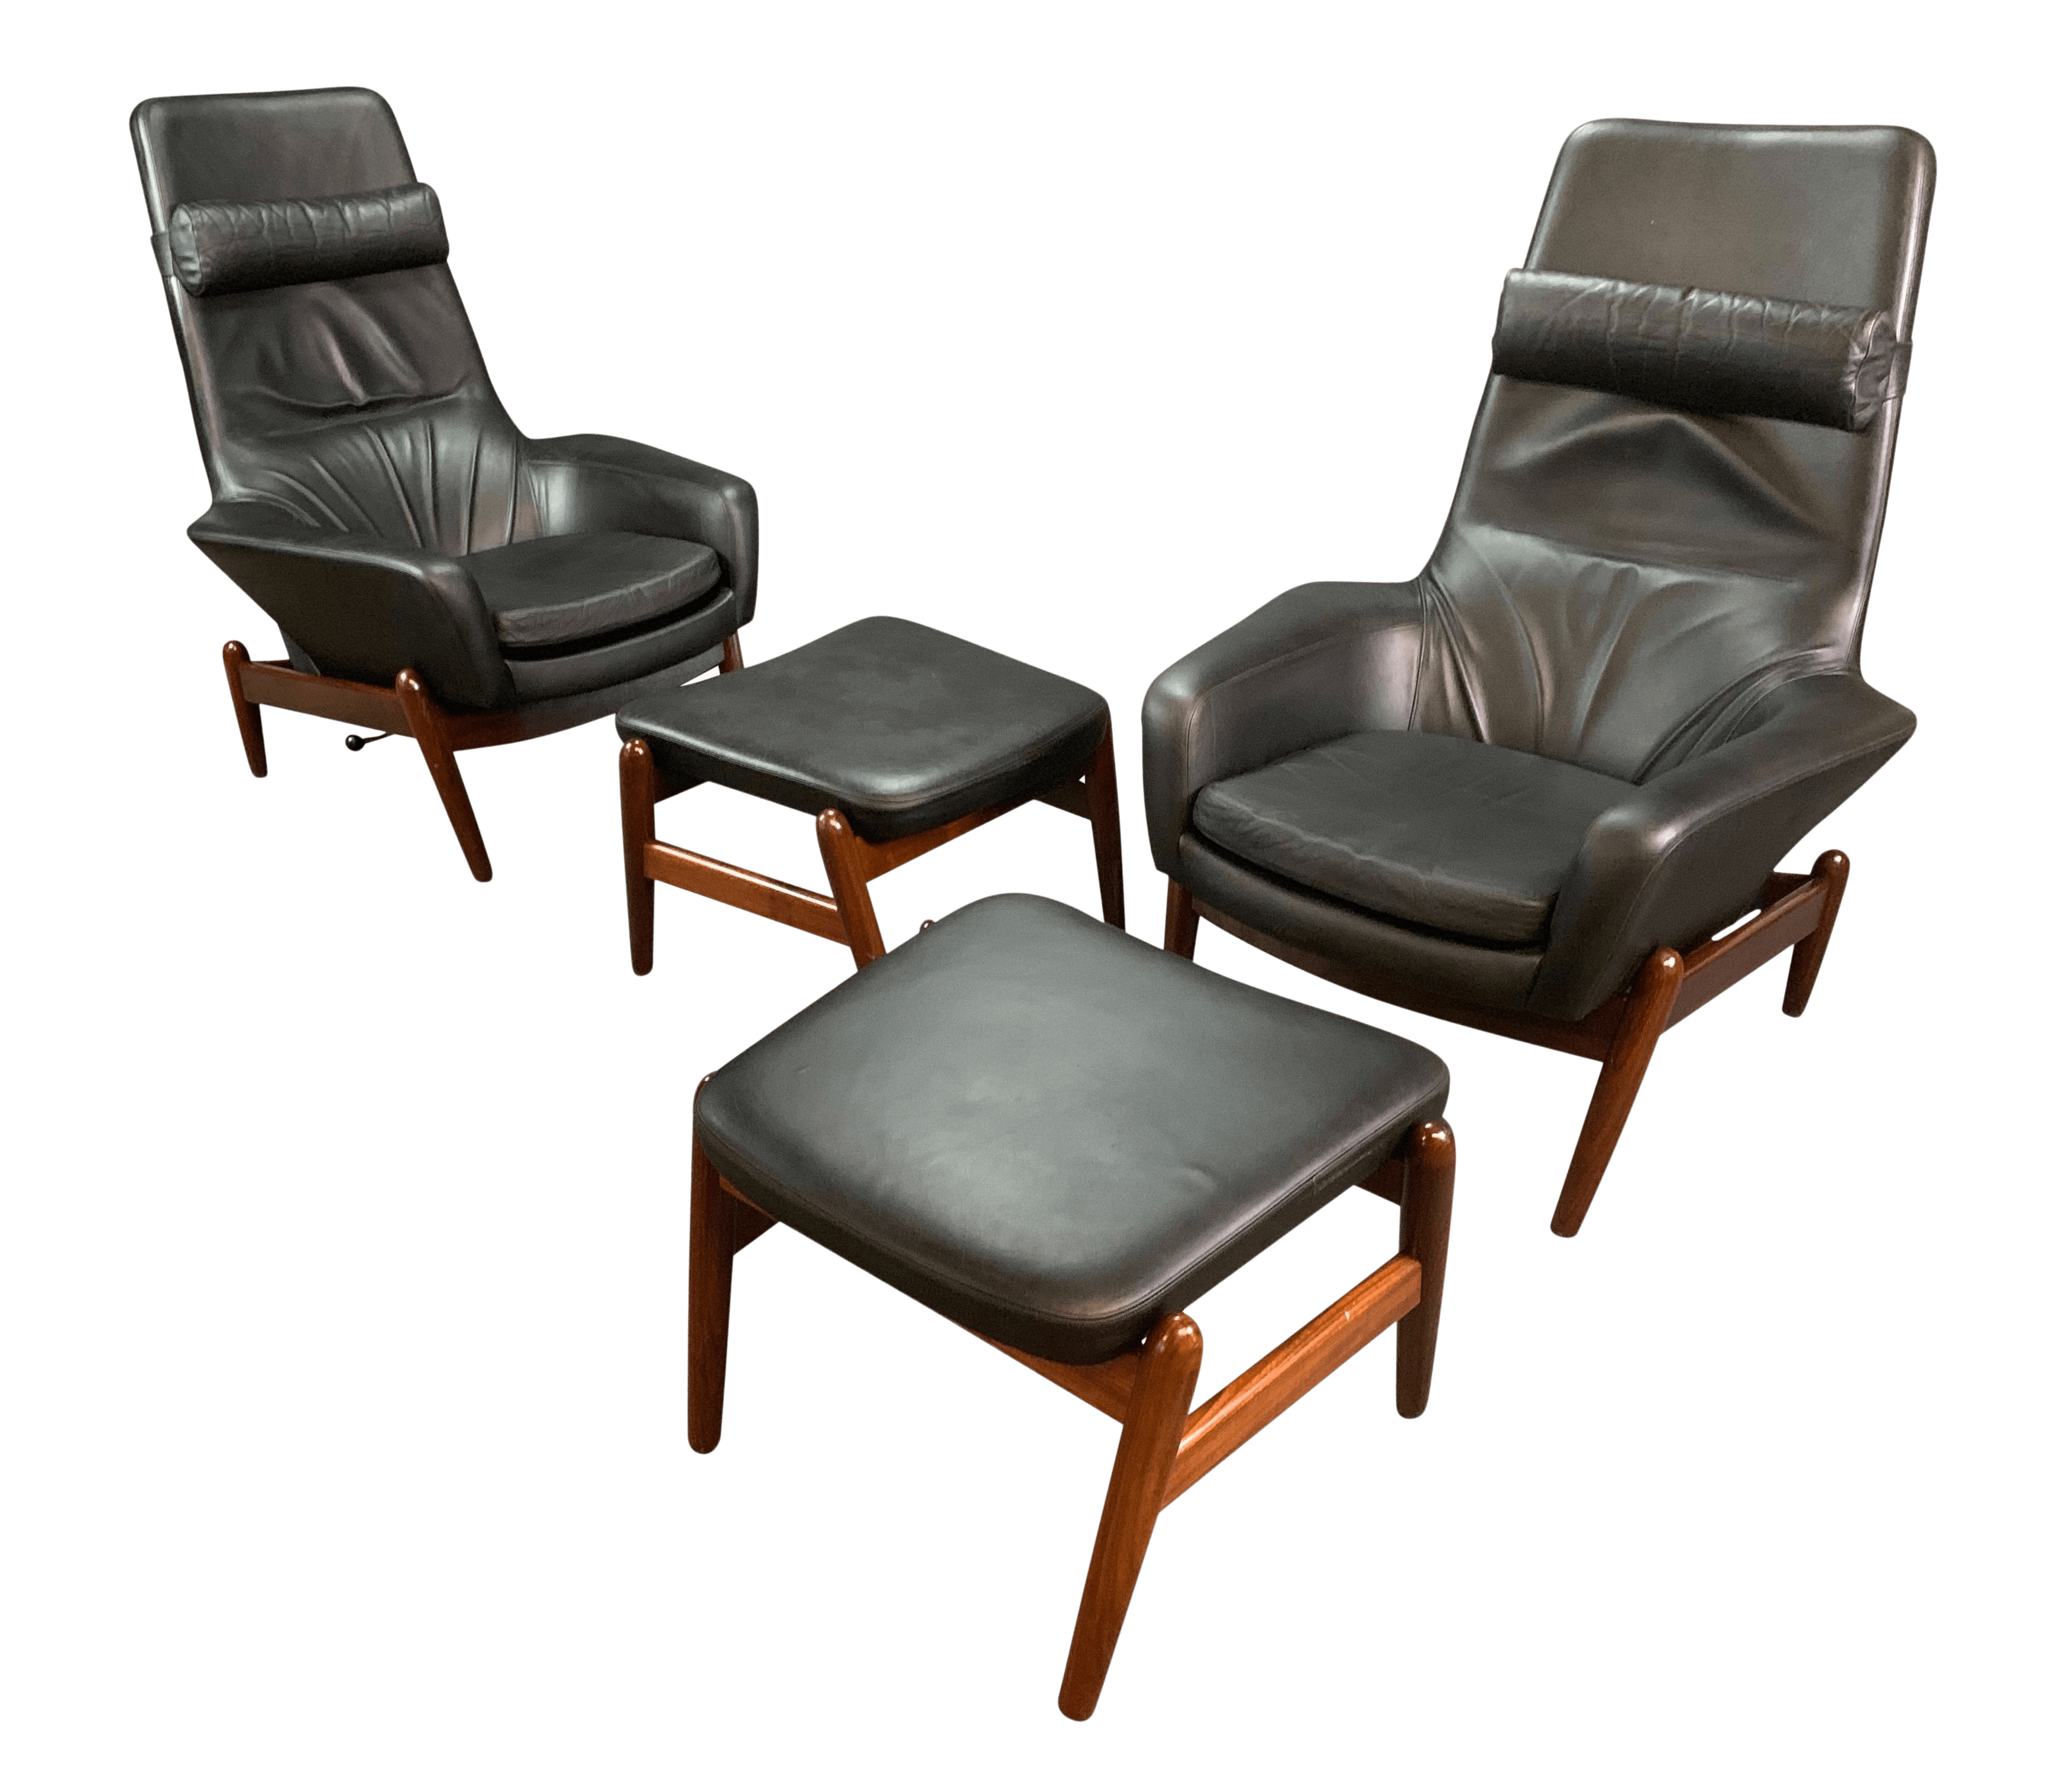 Pair Of Vintage Danish Mid Century Modern Recliners Lounge Chairs Ottomans Model Pd30 In Afromasia And Leather By Kofod Larsen Chairish